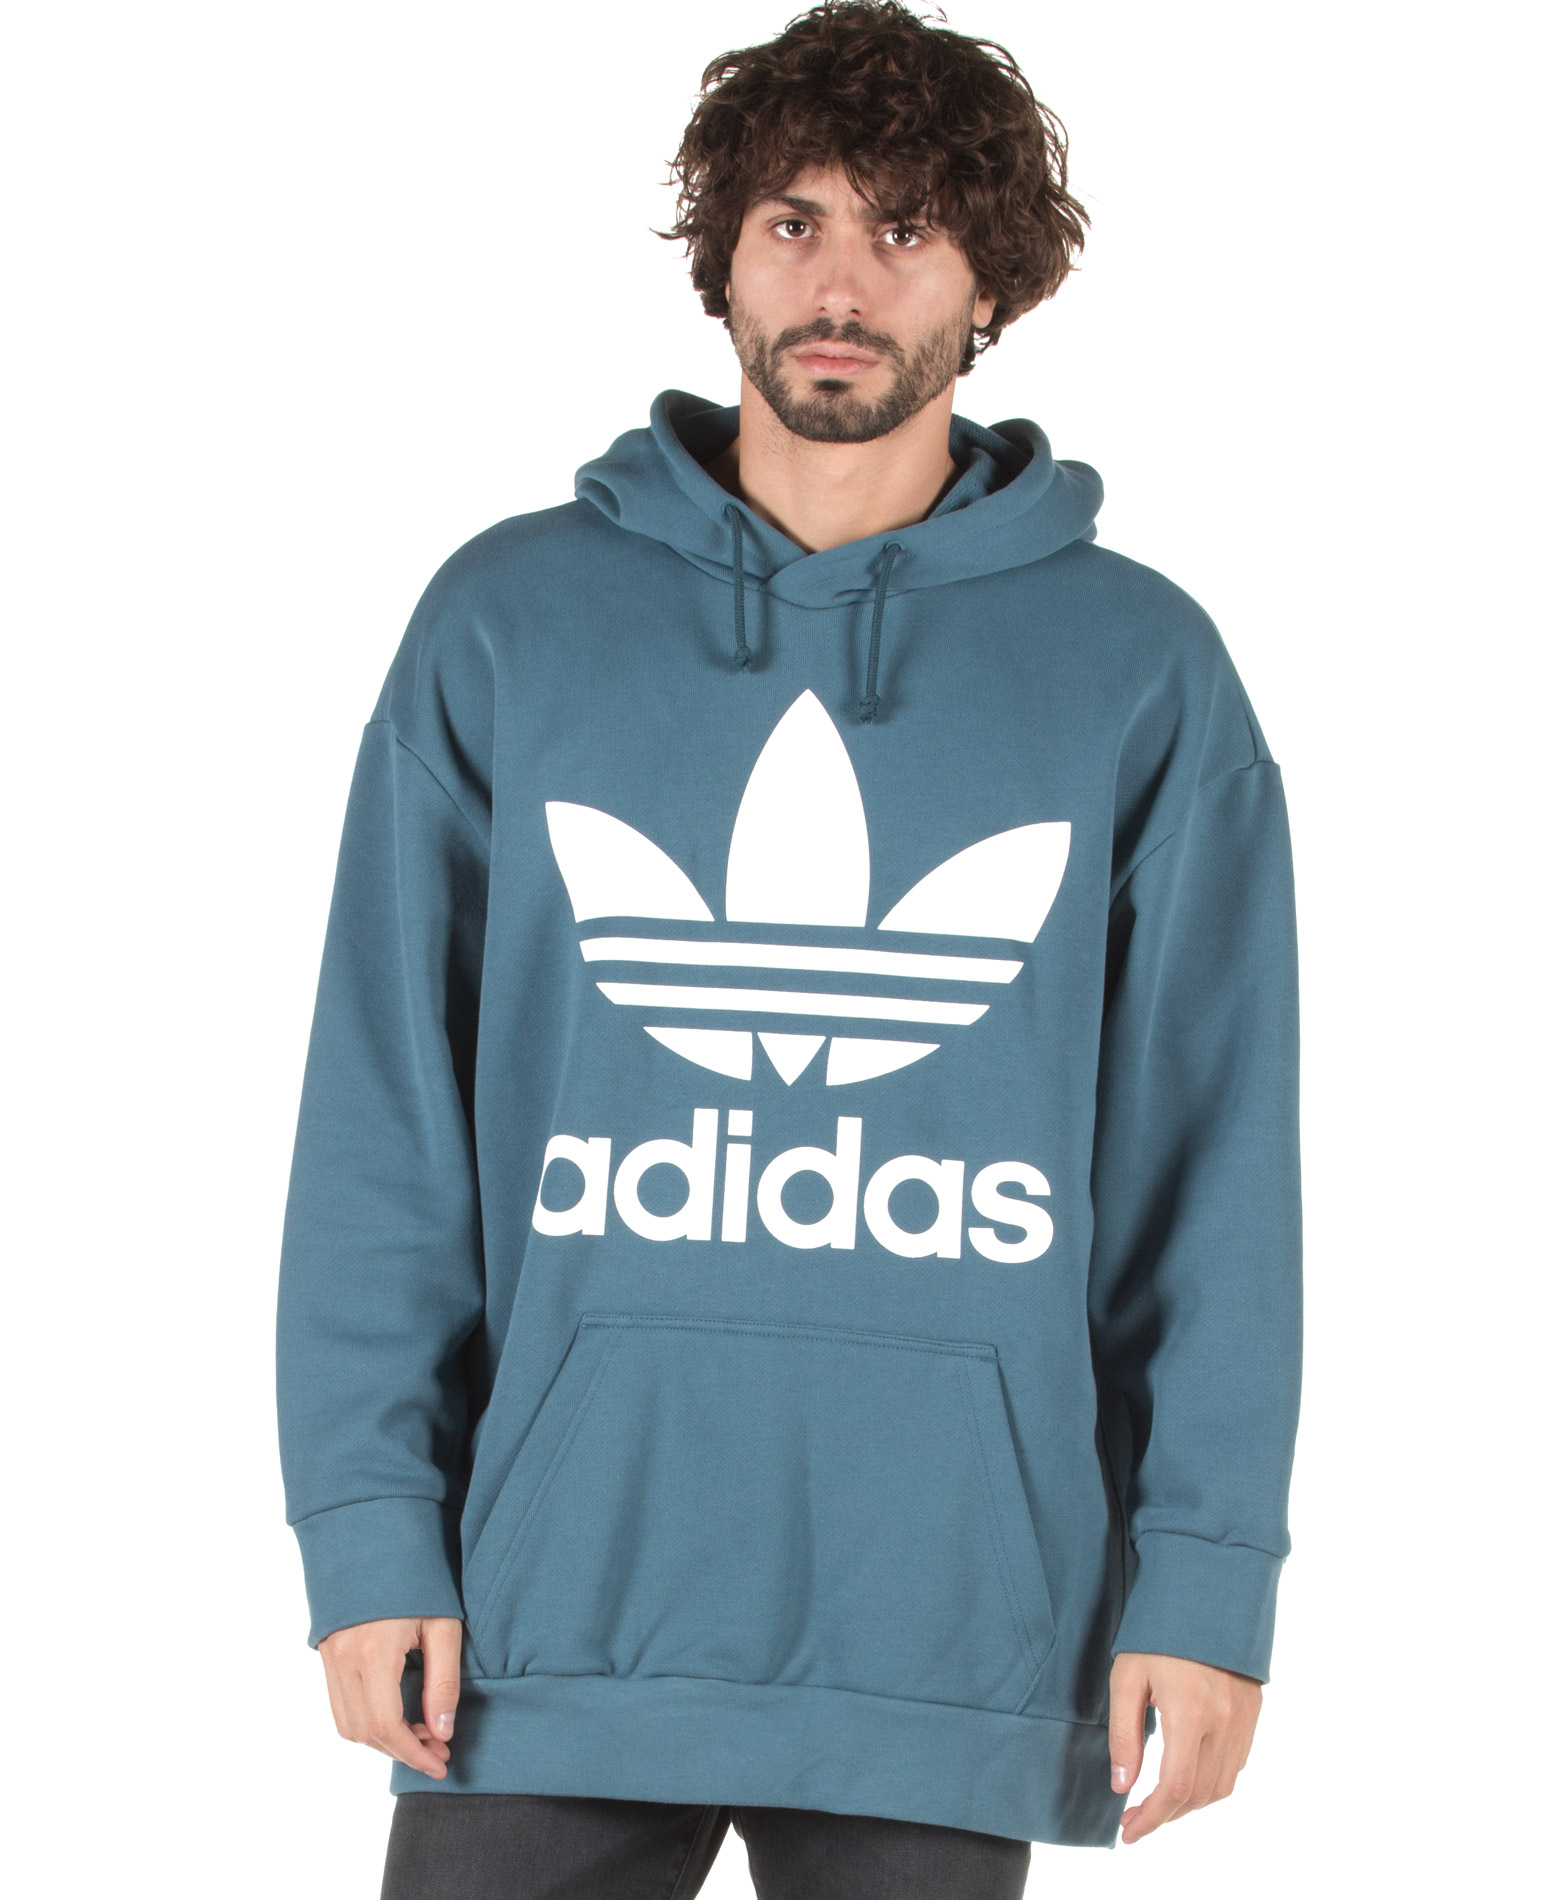 adidas Originals TREF OVER HOOD DH5767 Πετρόλ